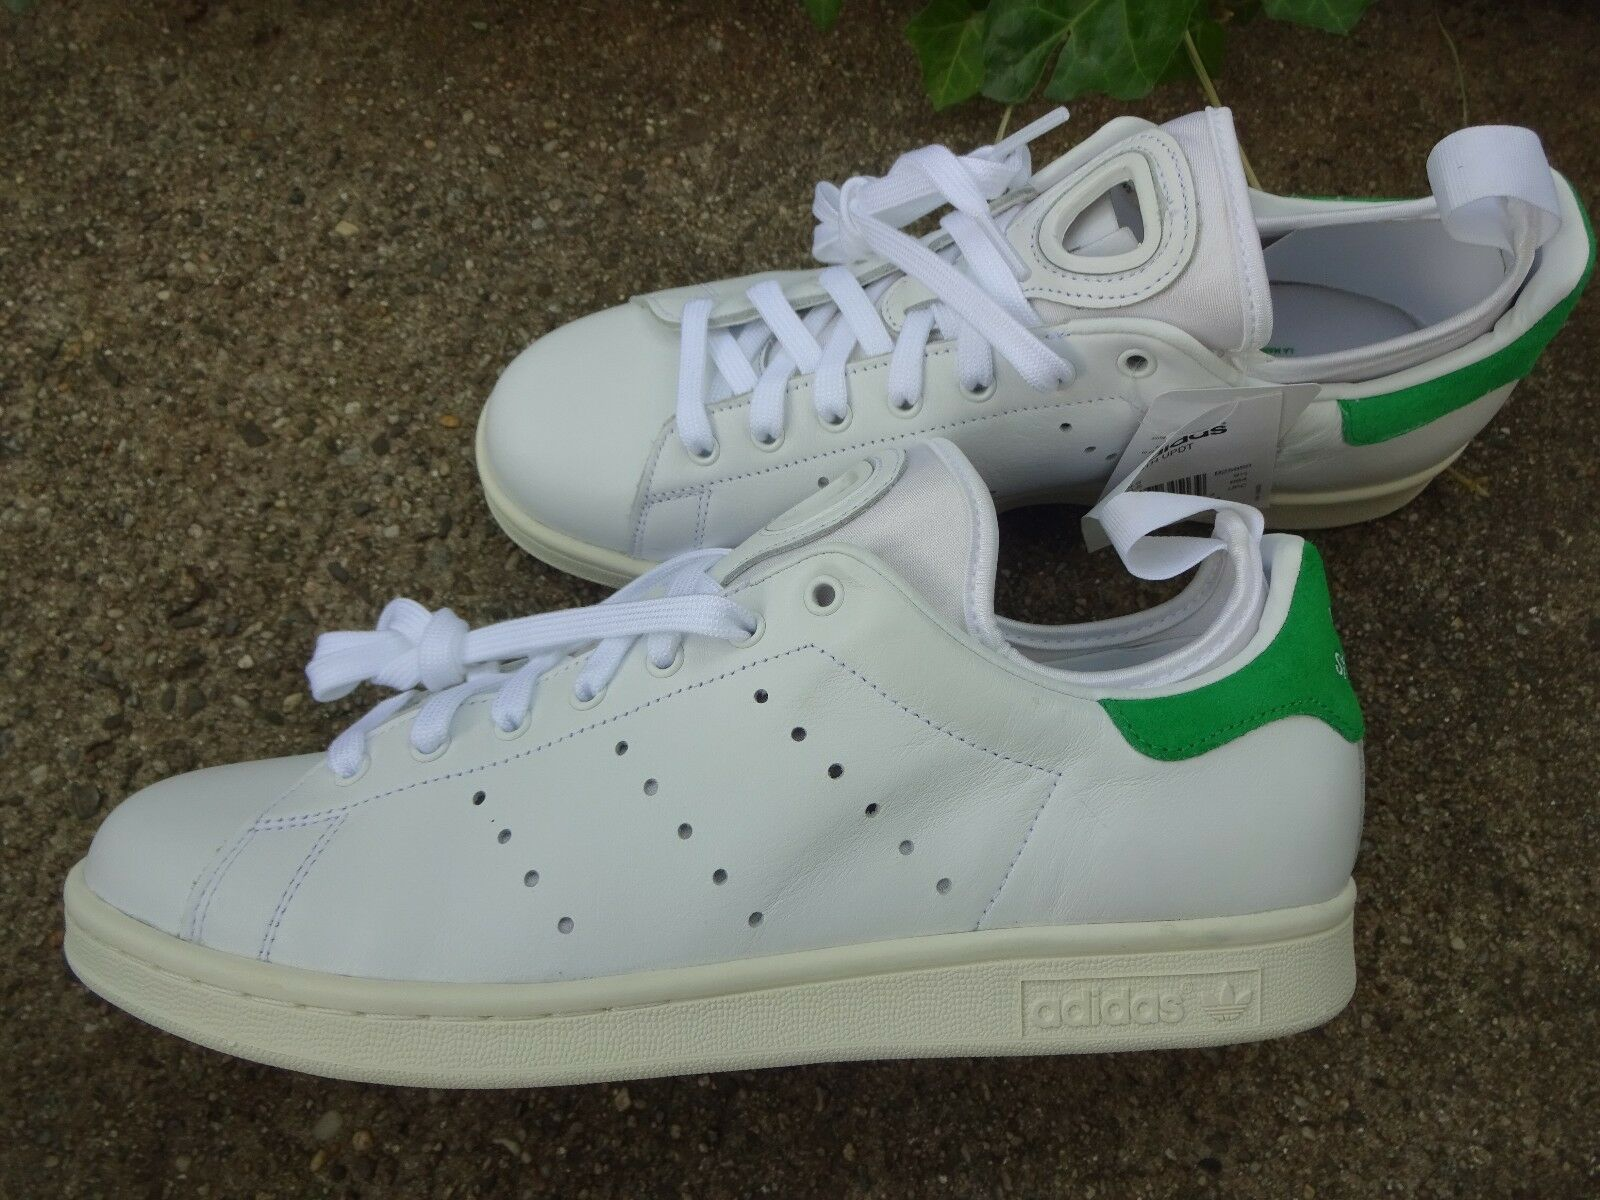 Adidas Smith Stan Smith Adidas Update B25850 Blanco Hombre Zapatos sneakers trainers fefc69